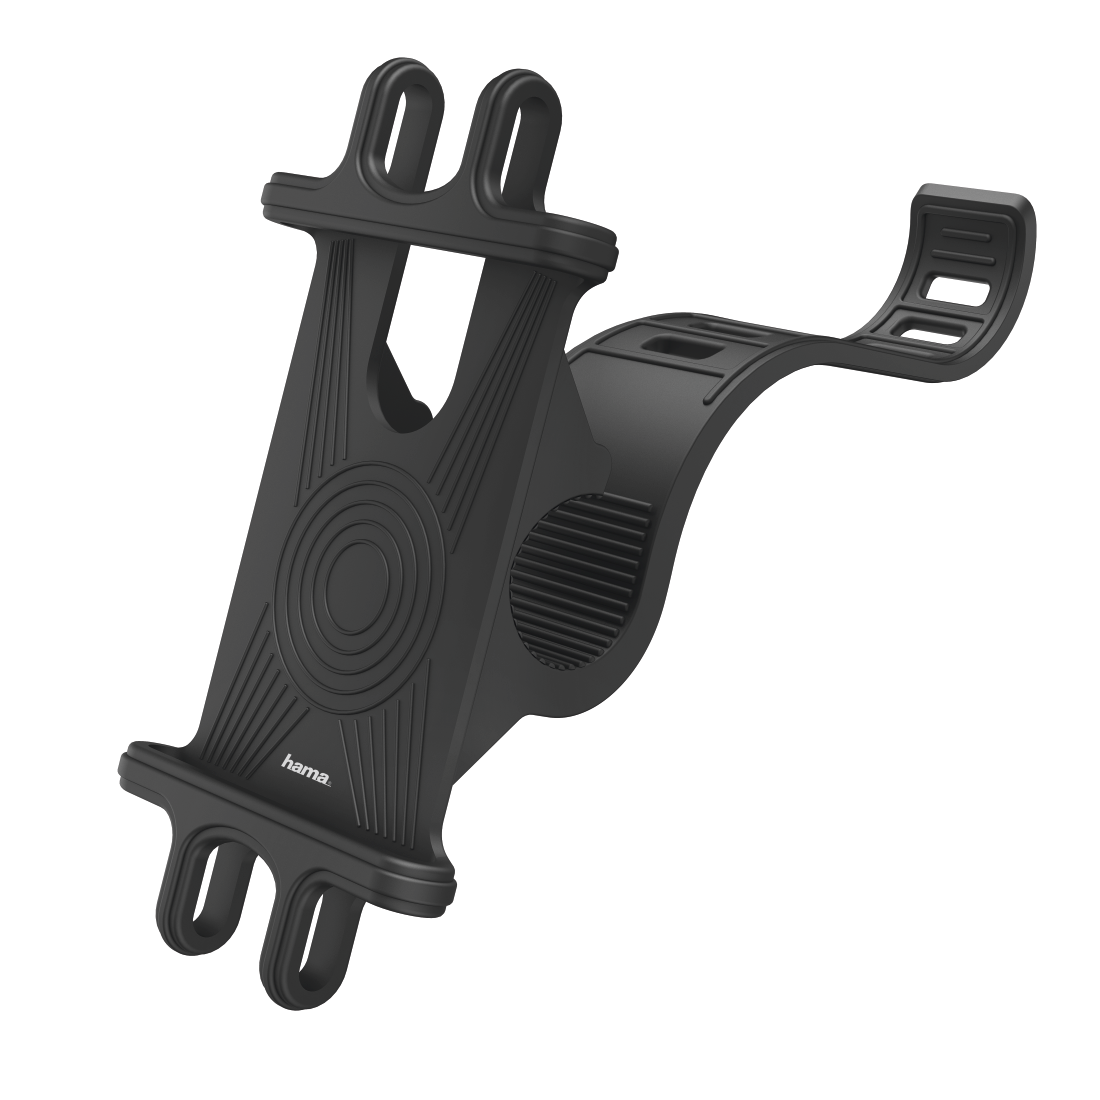 abx3 High-Res Image 3 - Hama, Universal Smartphone Bike Holder for Devices 6-8 cm Wide and 13-15 cm High